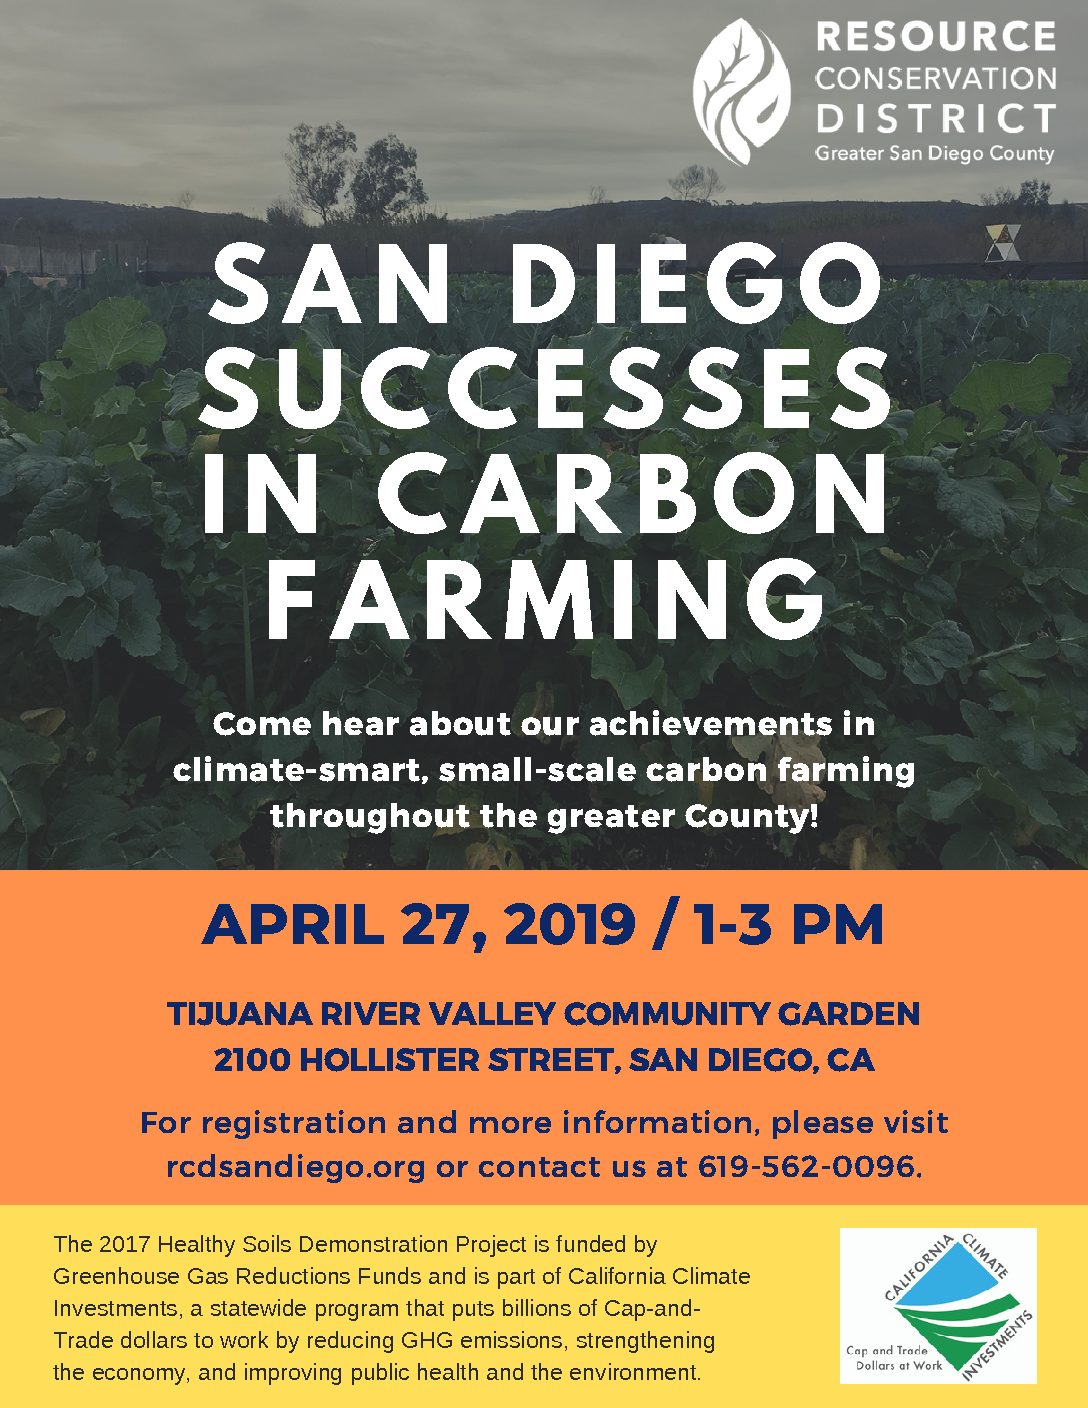 San Diego Successes in Carbon Farming